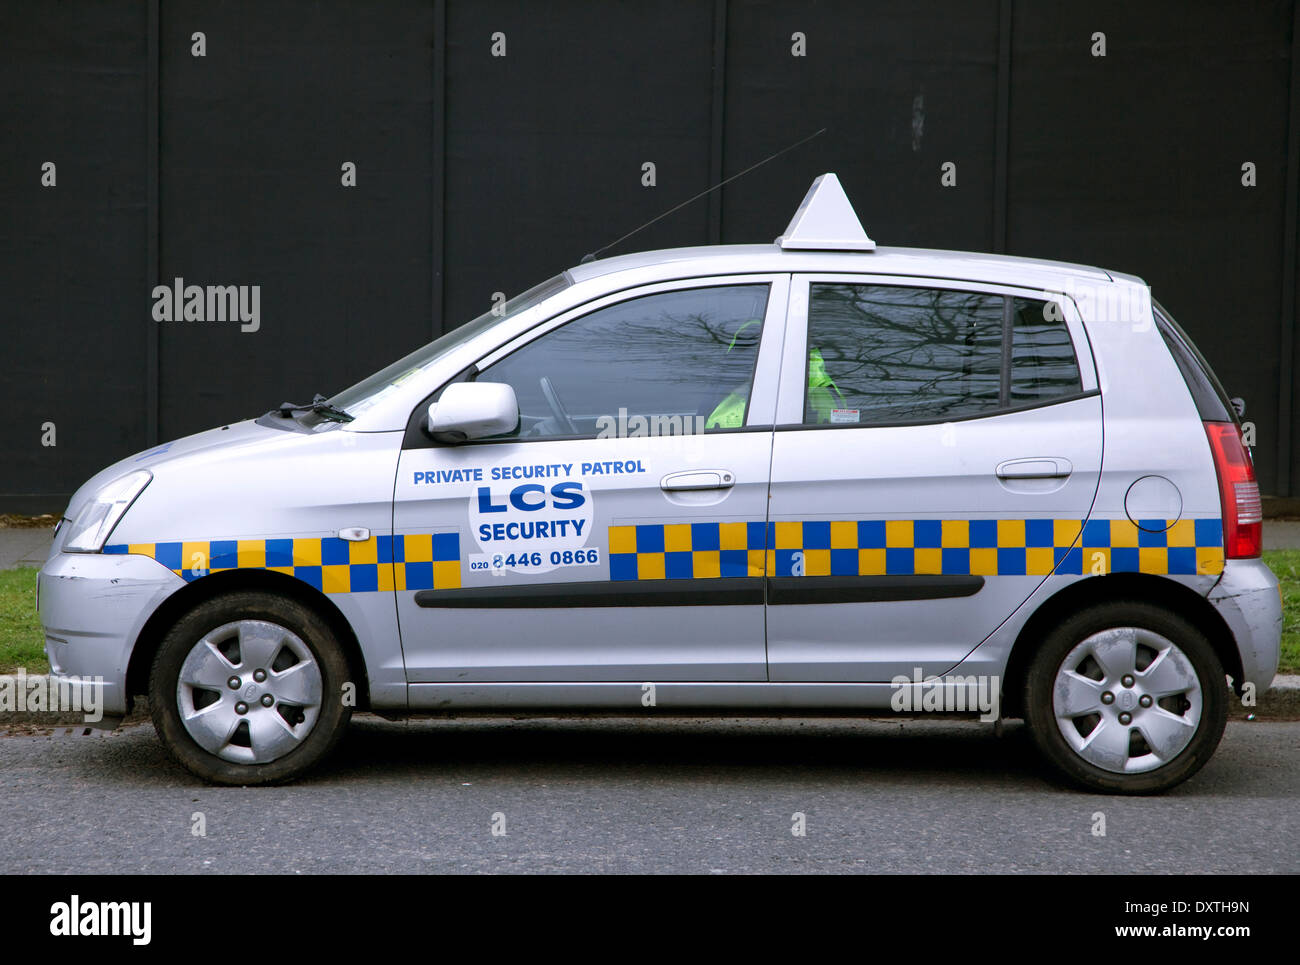 Private security patrol vehicle in wealthy neighbourhood, London - Stock Image